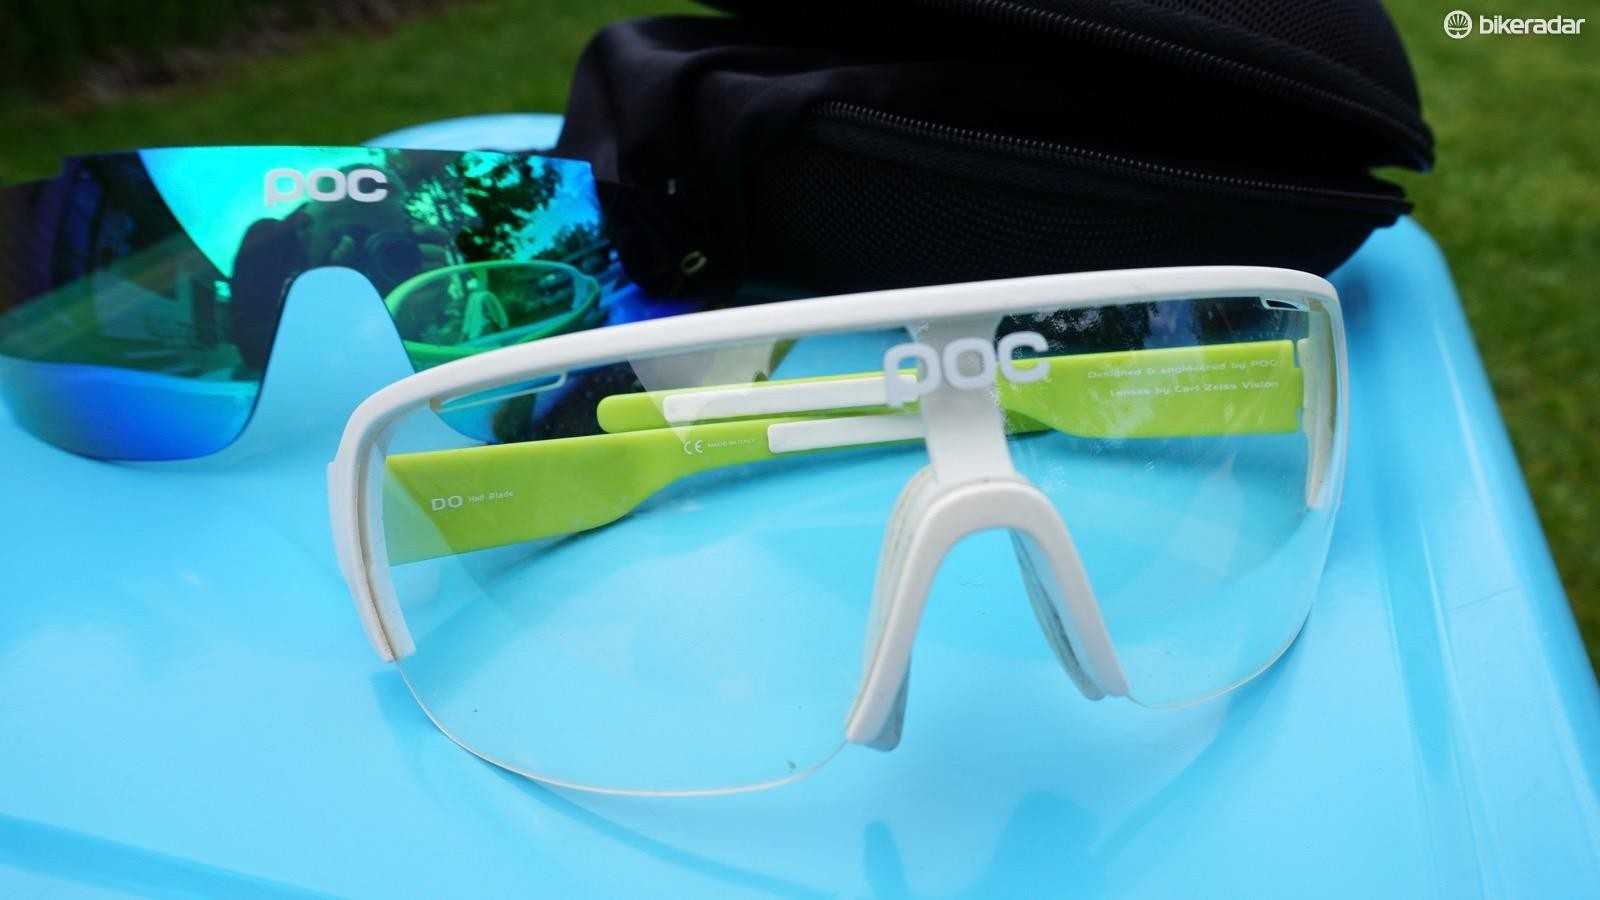 Both lenses have Ripel and anti-fog treatments, which help keep your field of vision clear